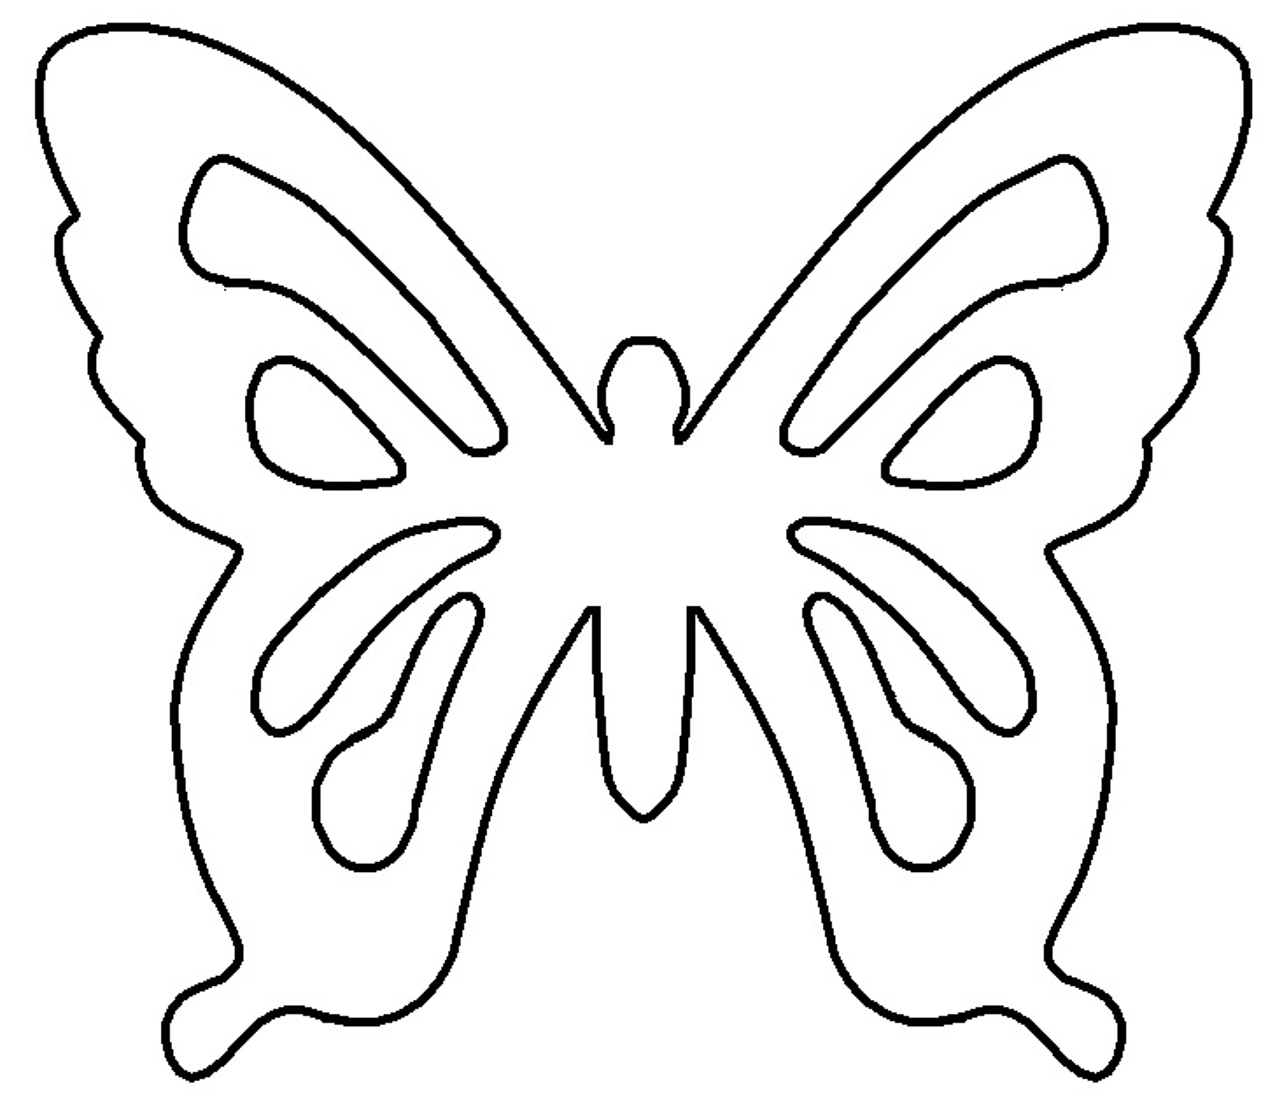 Simple Butterfly Outline - ClipArt Best